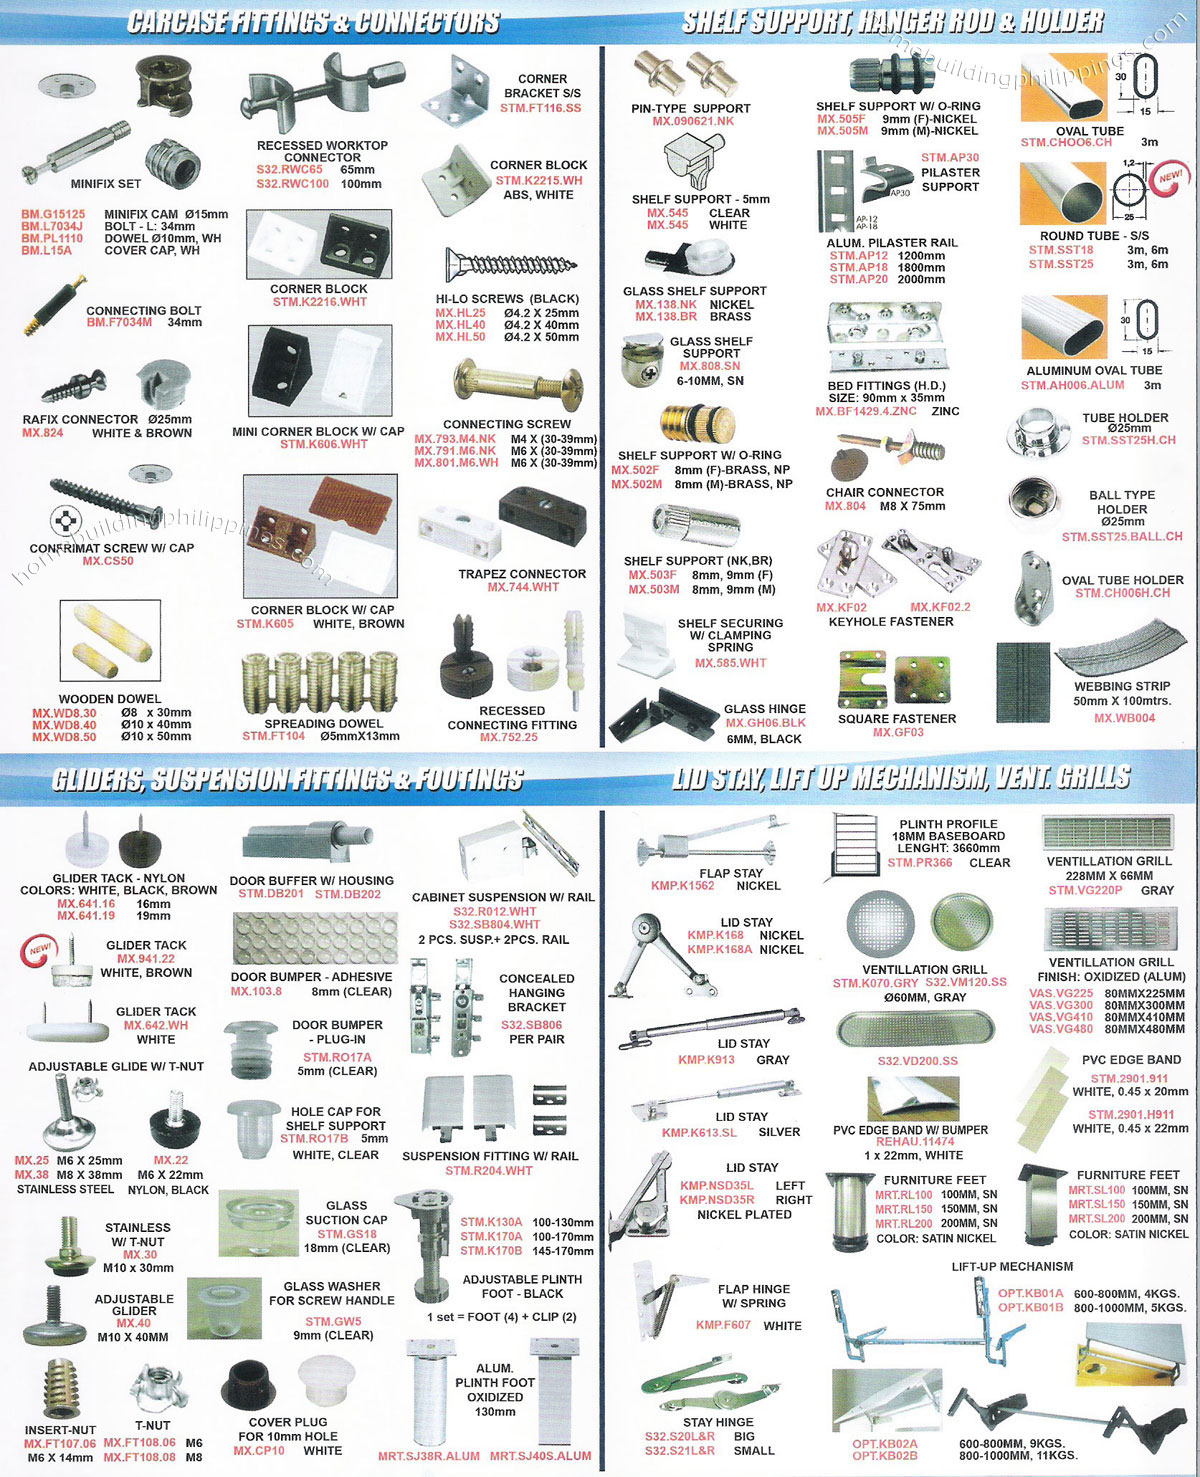 Carcase Fittings & Connectors, Shelf Support, Hanger Rod, Gliders ...